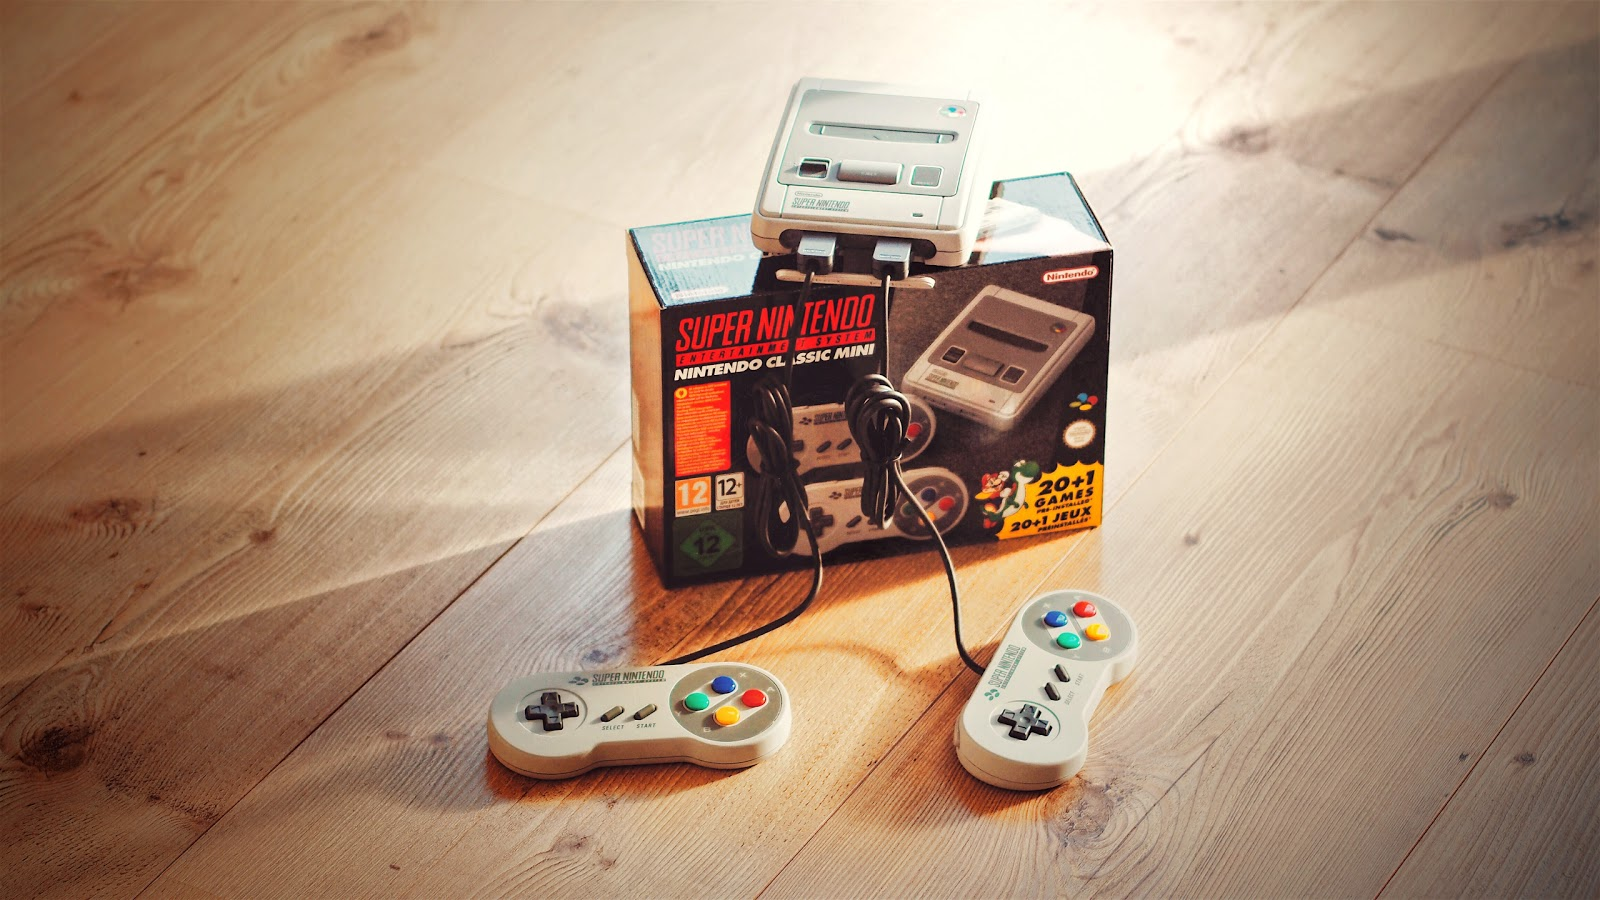 Das Super Nintendo Entertainment System - Classic Mini im Atomlabor